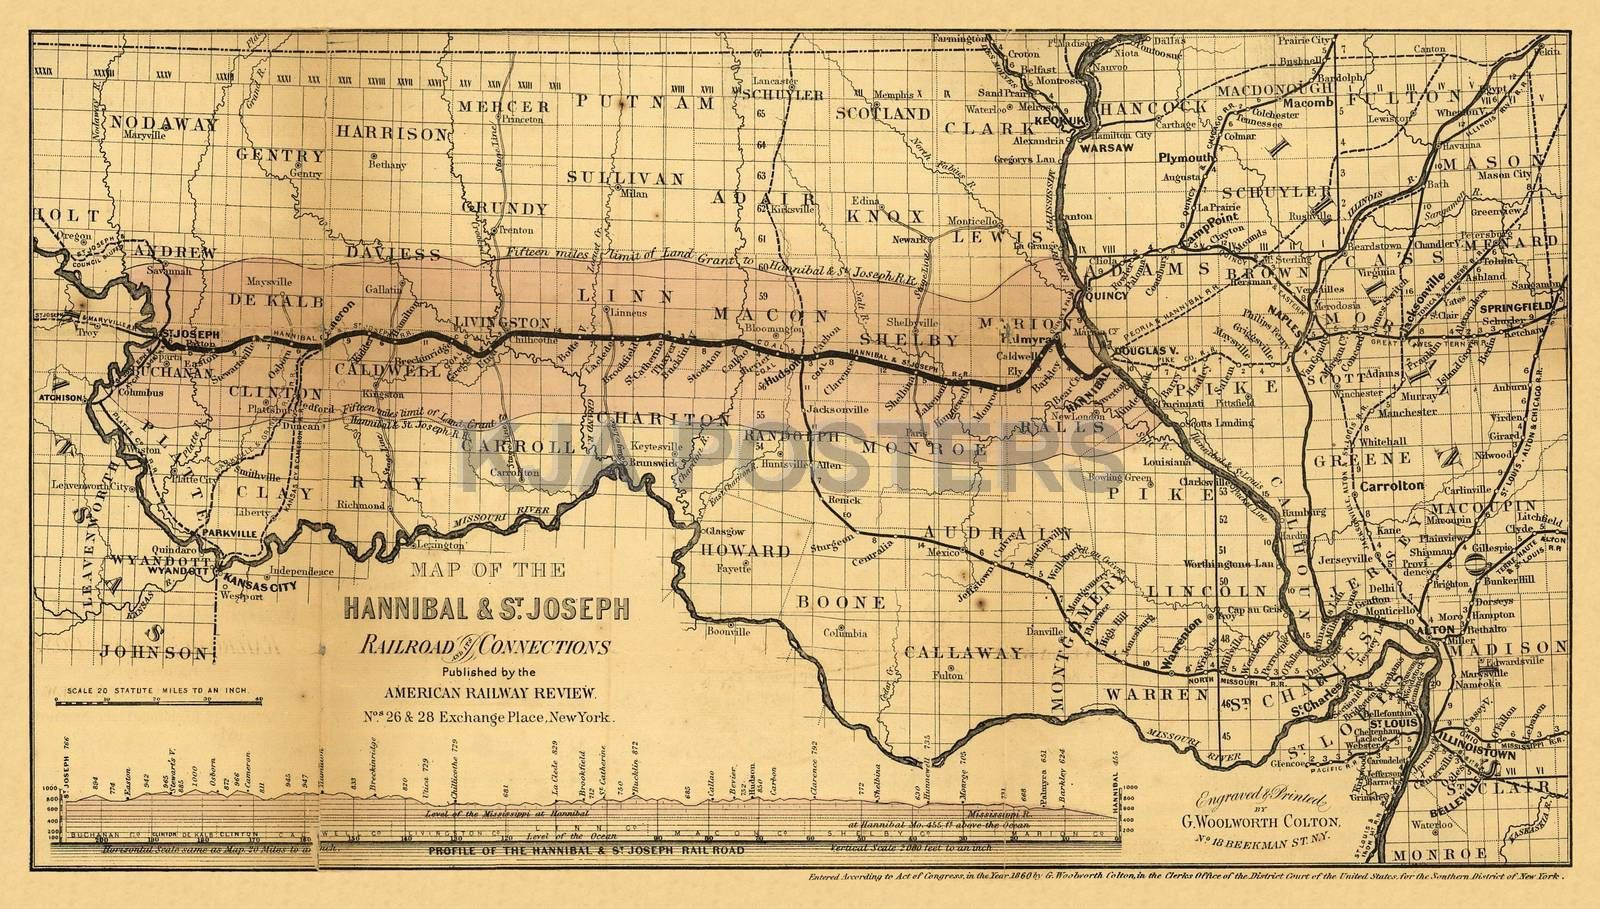 Hannibal & St. Joseph Railroad Map 1860 | Products | Map, New york on illinois state map missouri, map of streets in hannibal, map downtown hannibal,